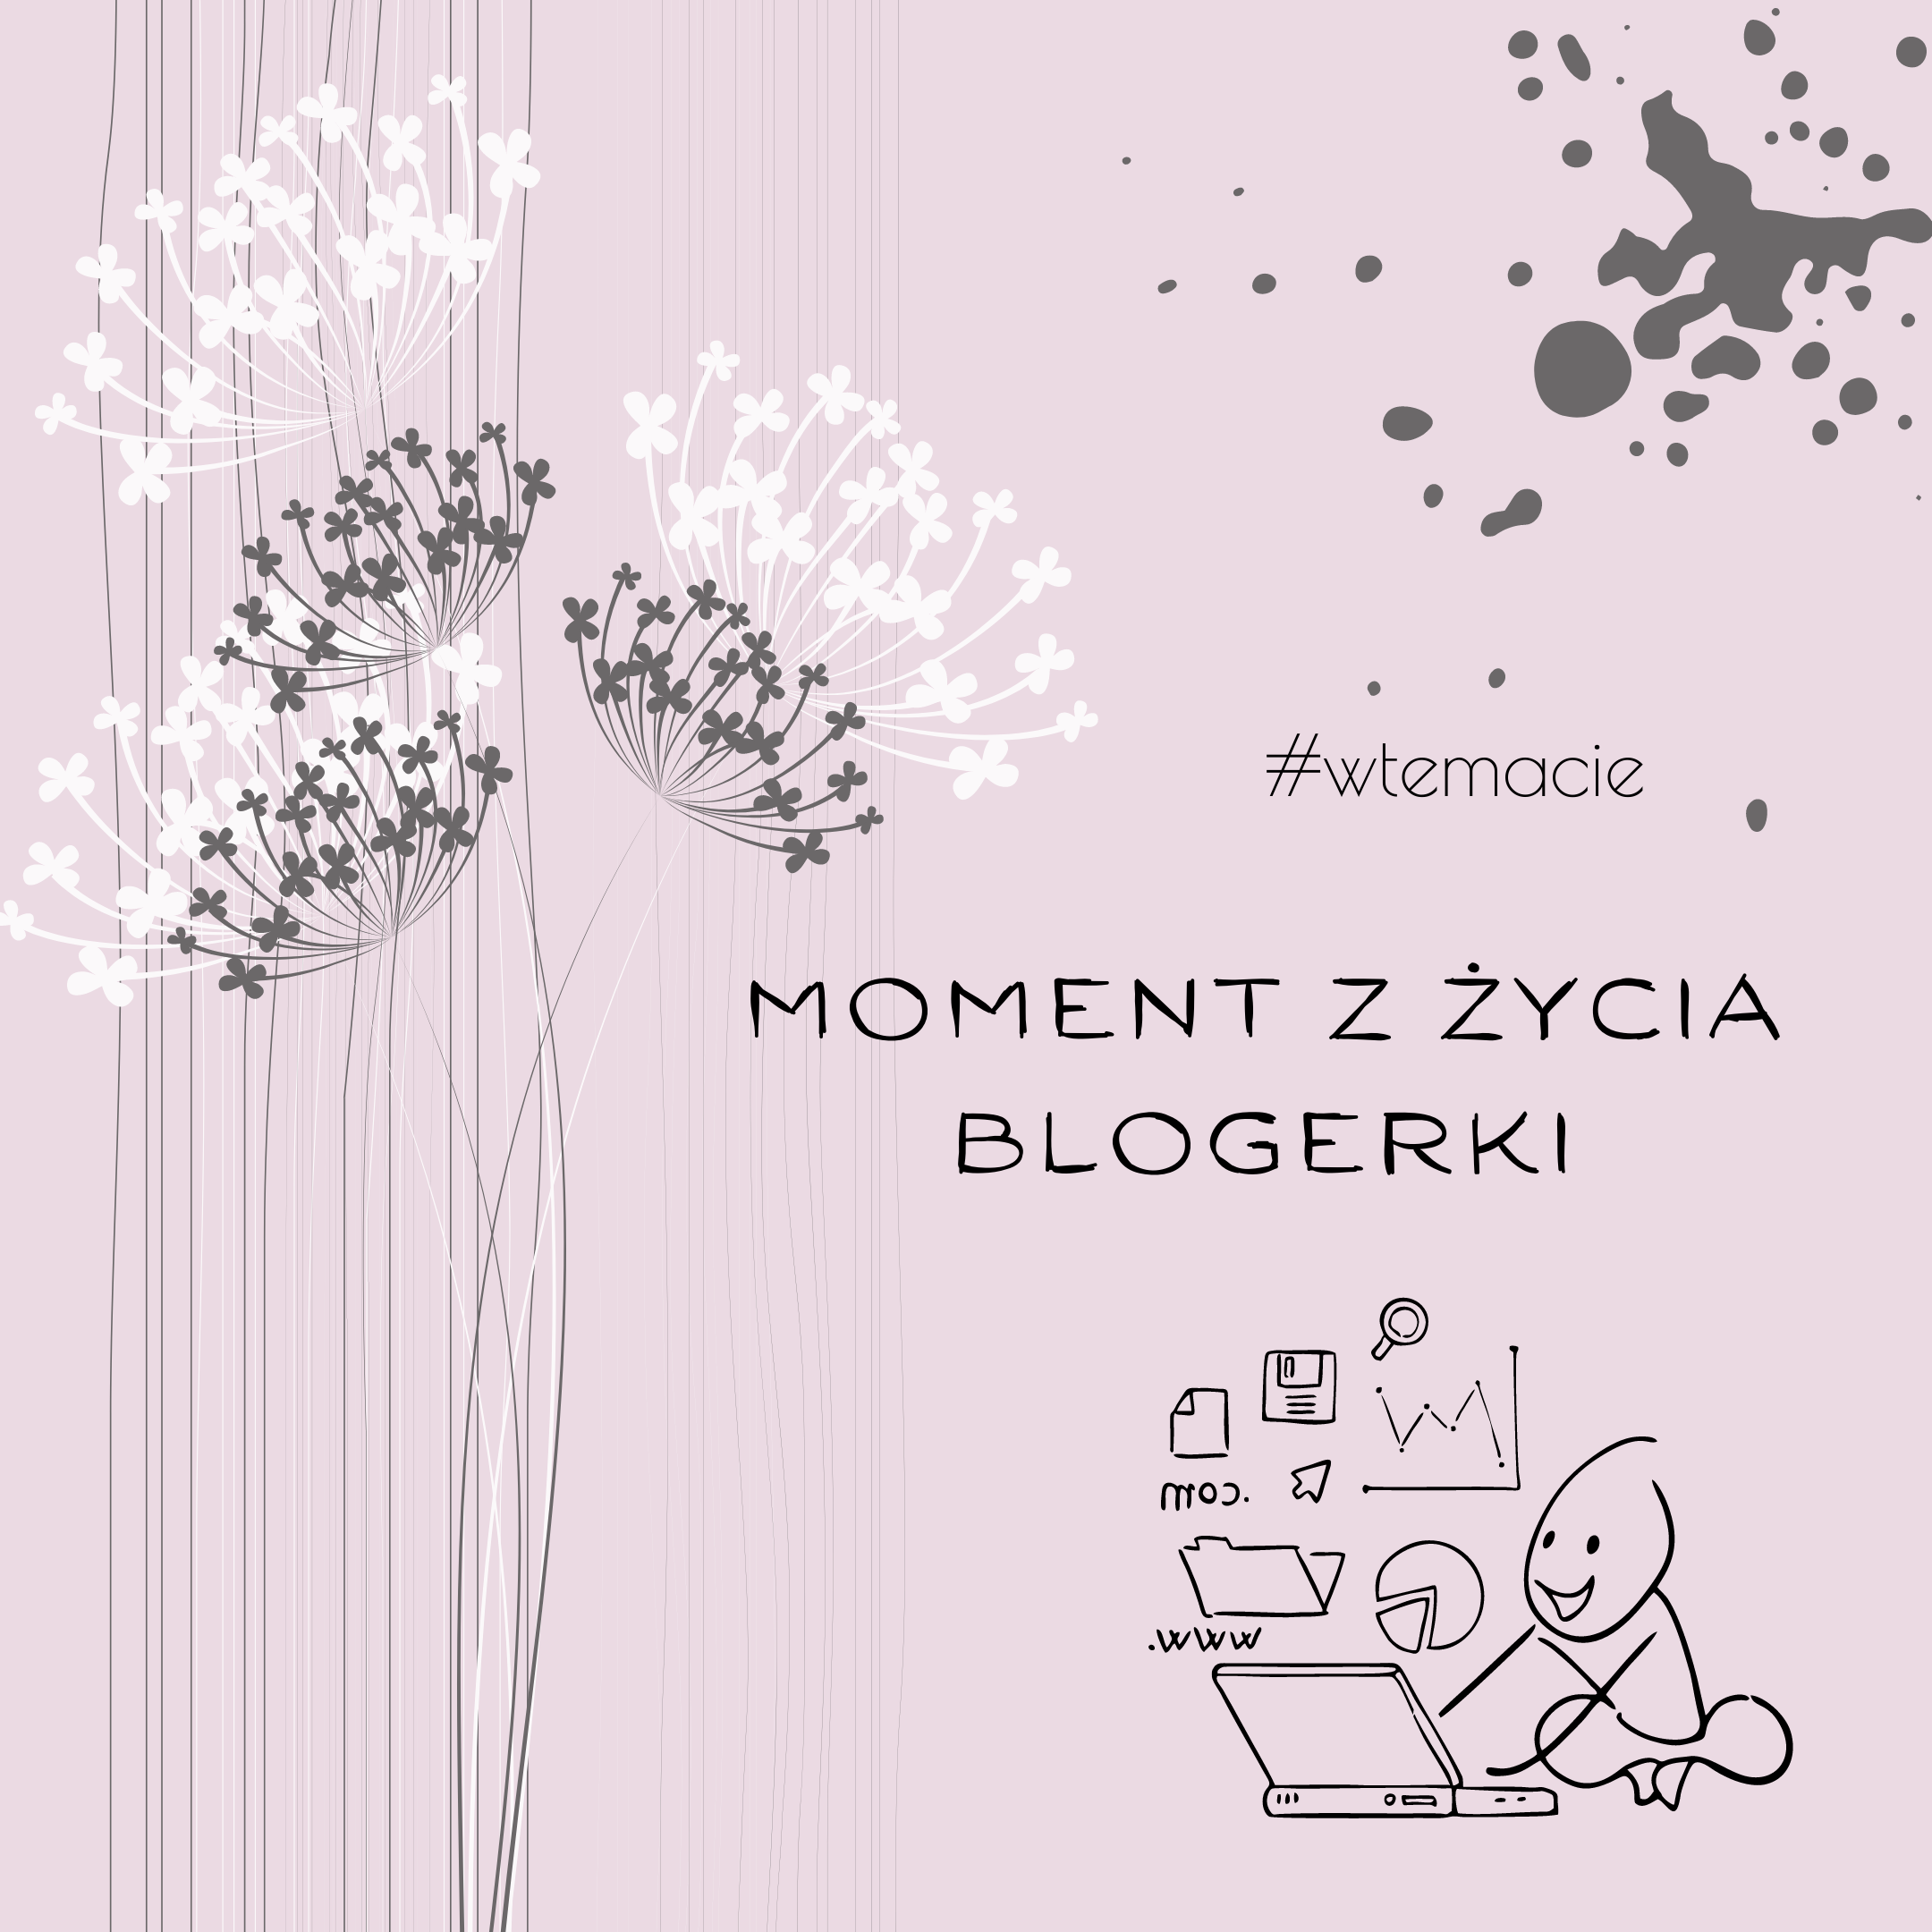 Moment z życia blogerki